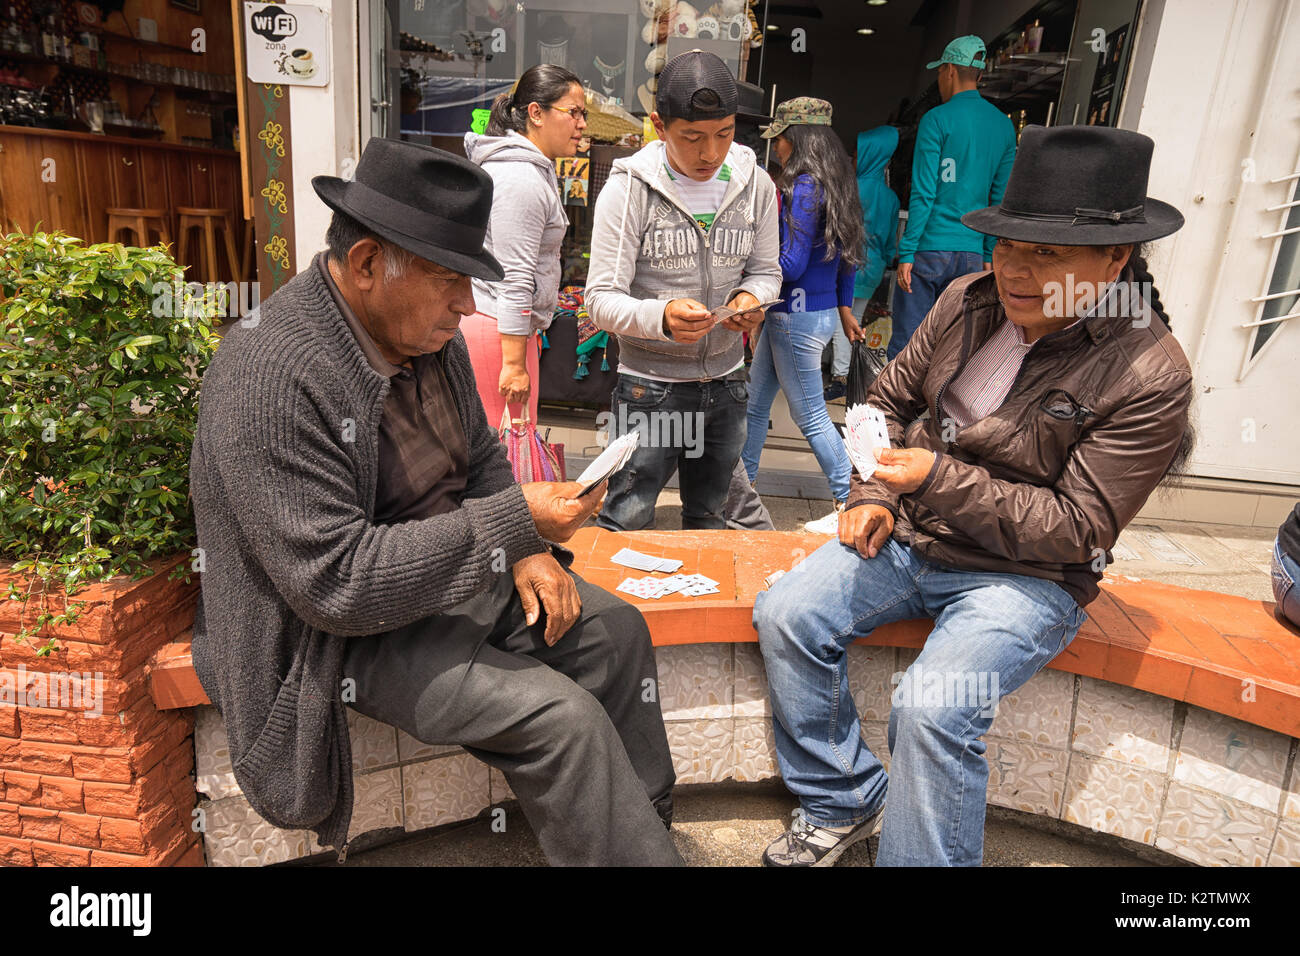 May 6, 2017 Otavalo, Ecuador: indigenous quechua men playing cards on the street in the Saturday market - Stock Image